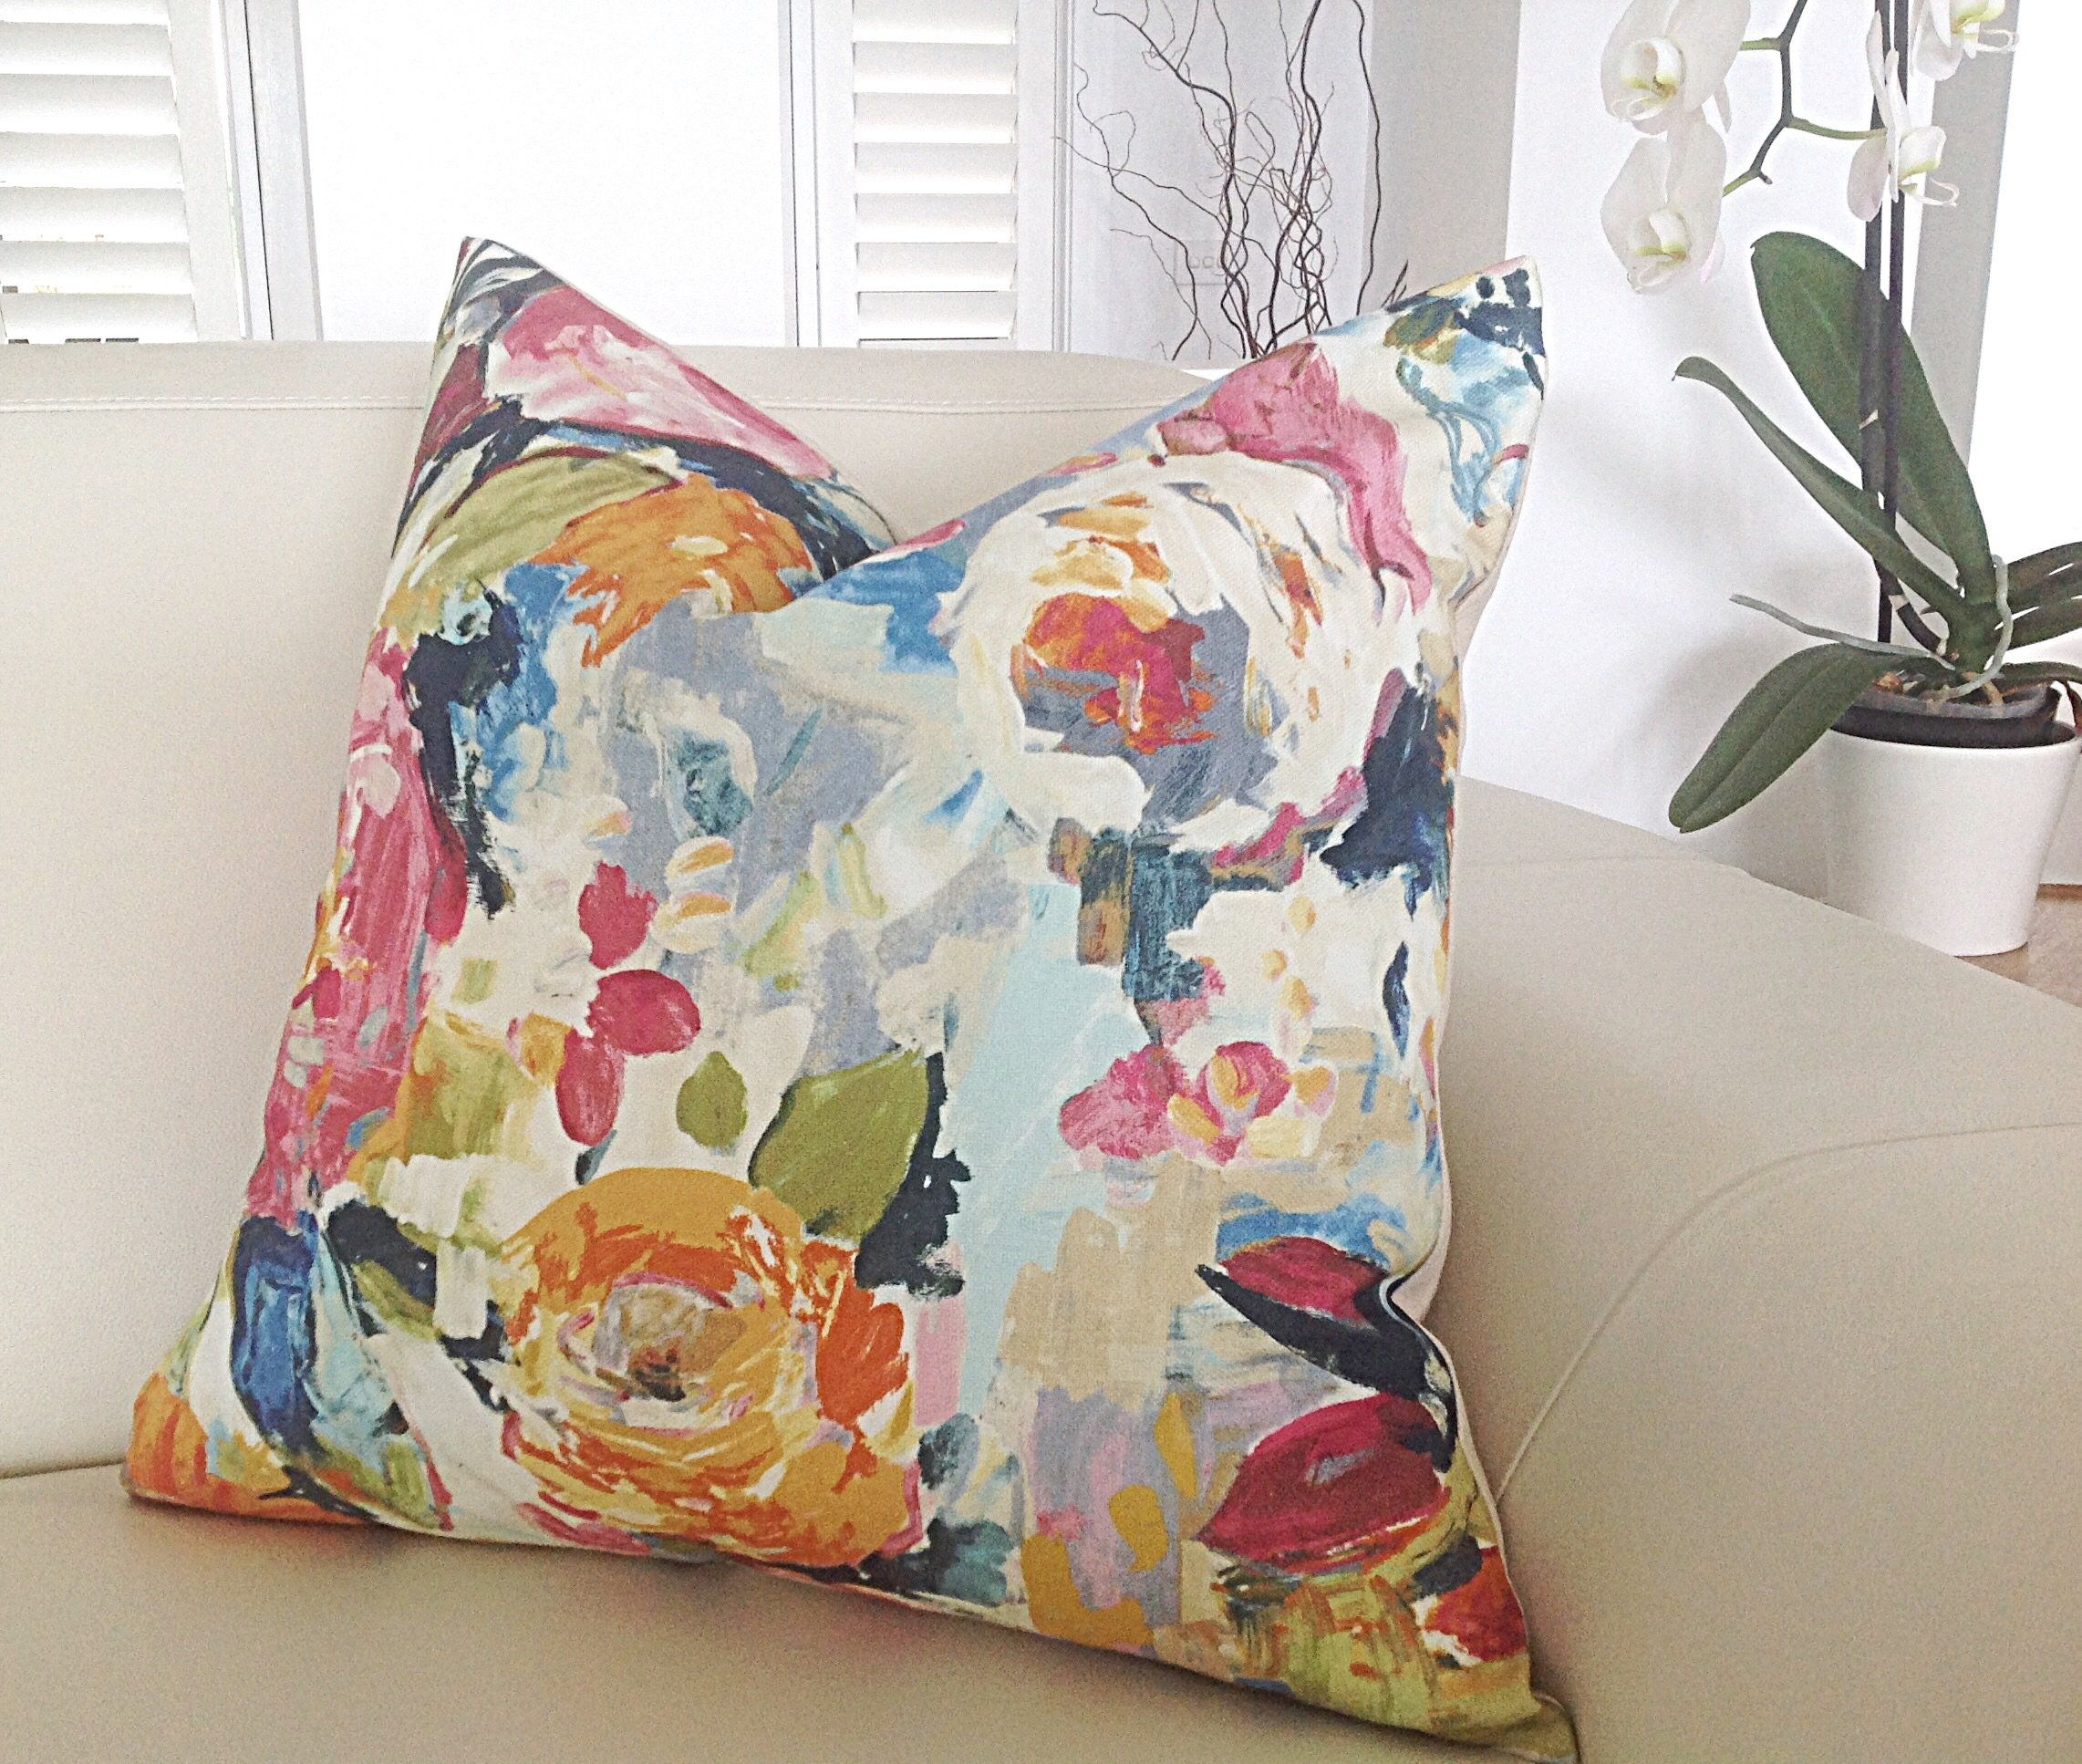 abstract floral cushions pillows